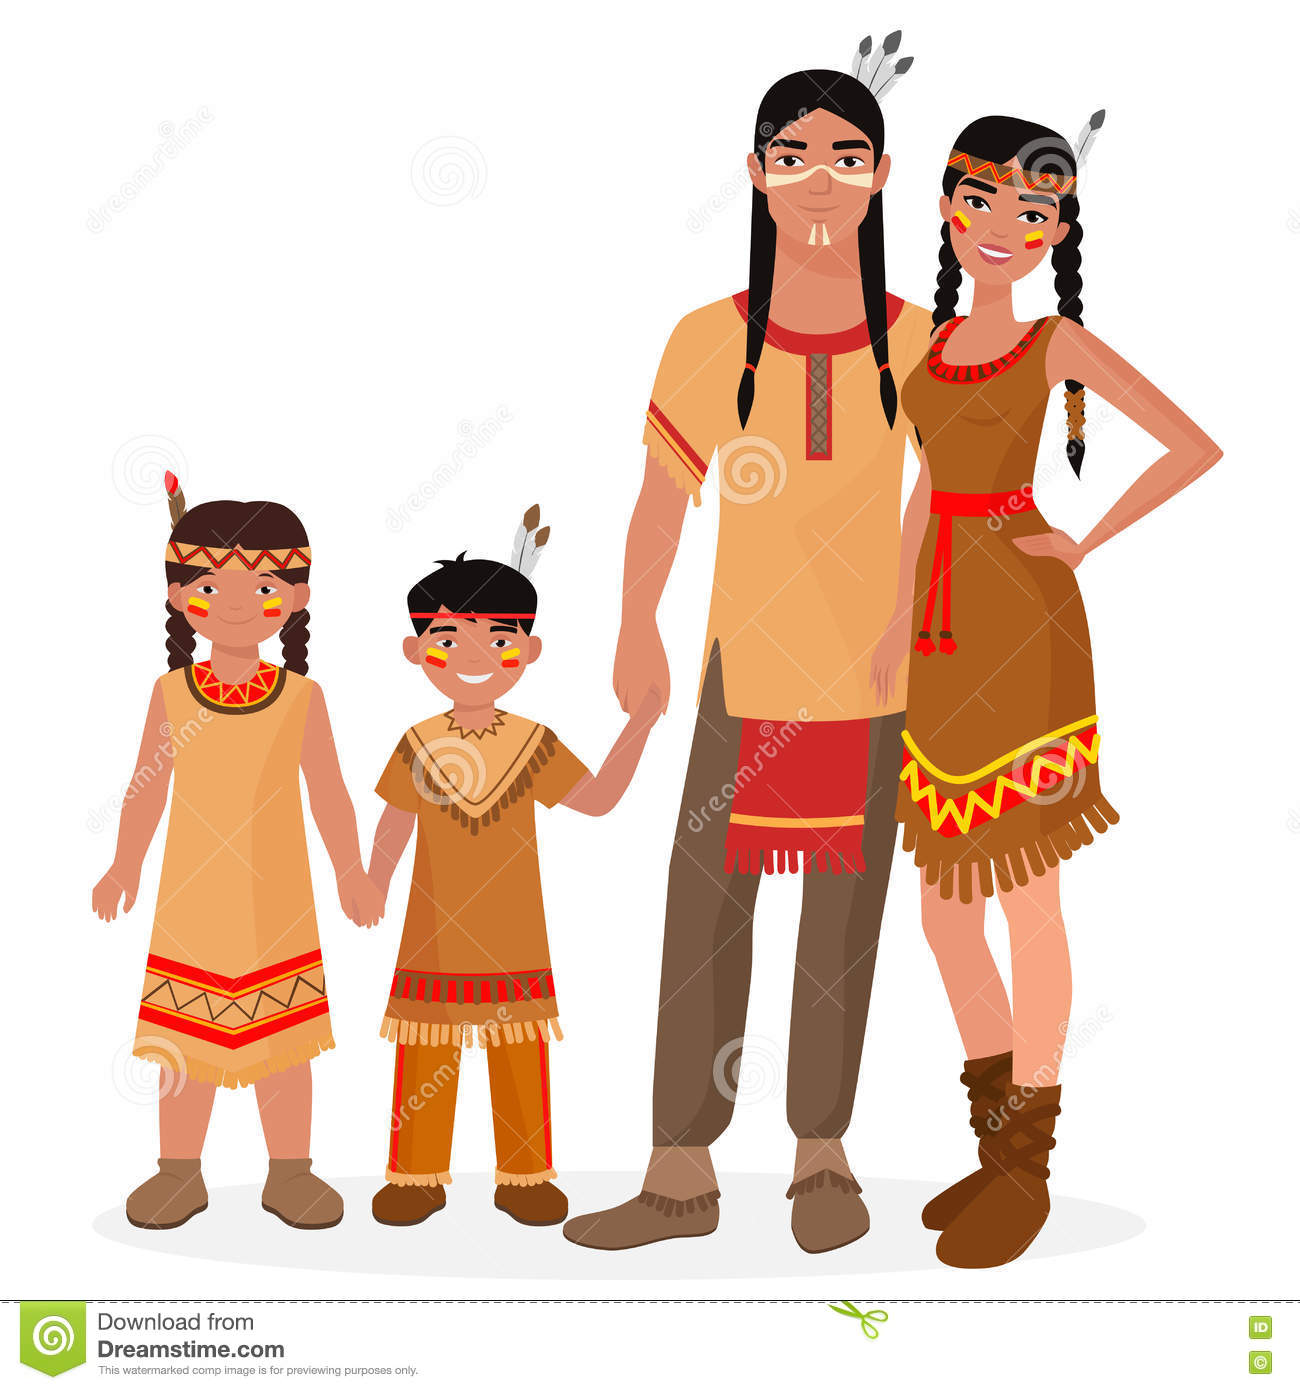 A tribe of woman clipart clipart images gallery for free.